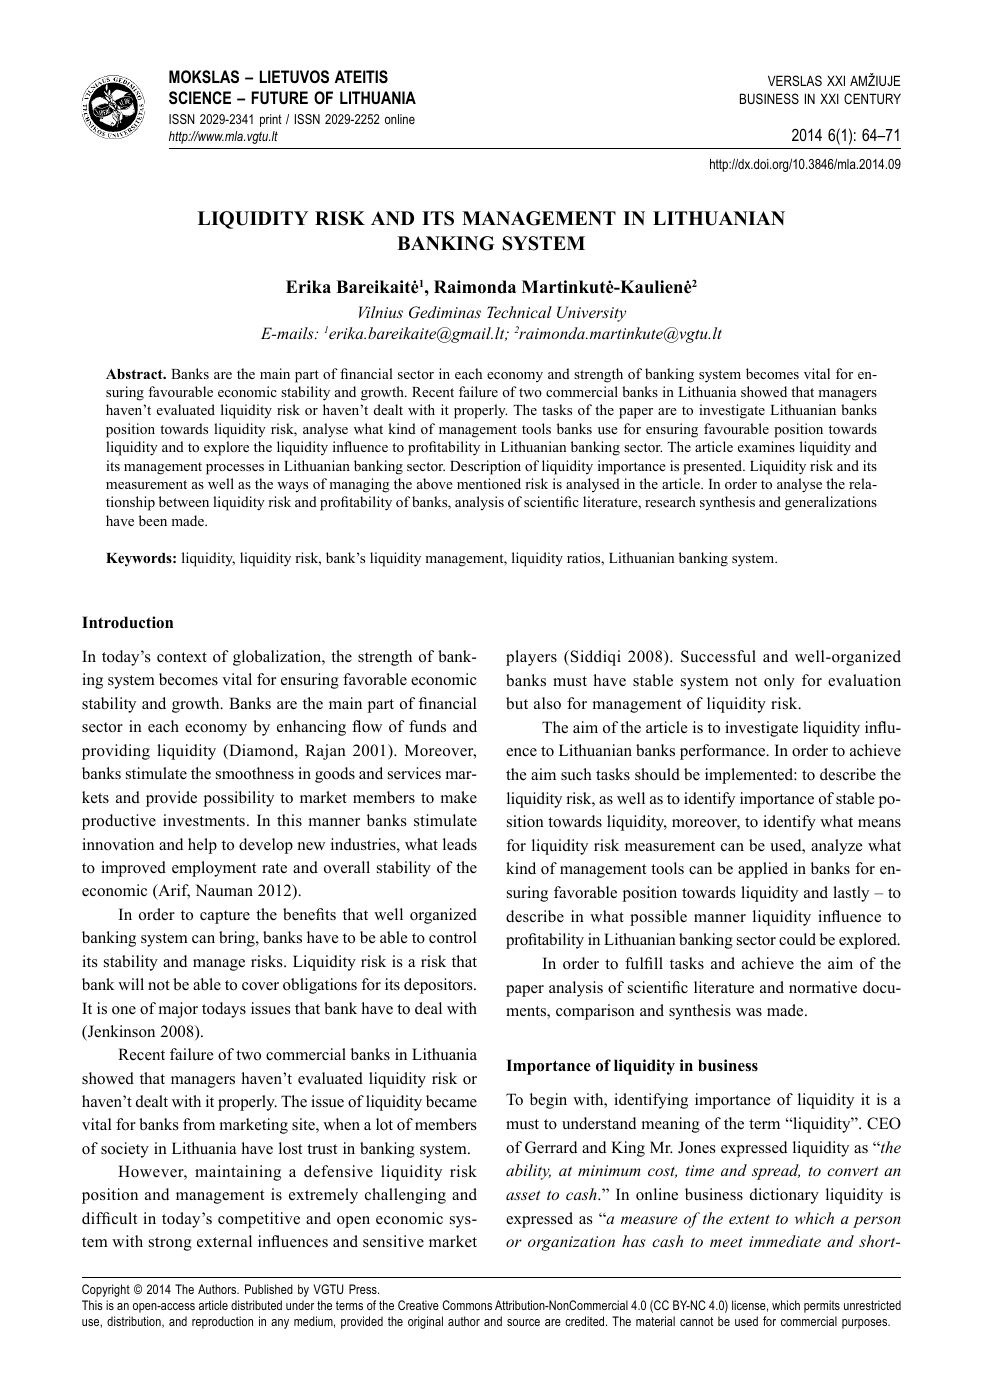 Liquidity Risk and its Management in Lithuanian Banking